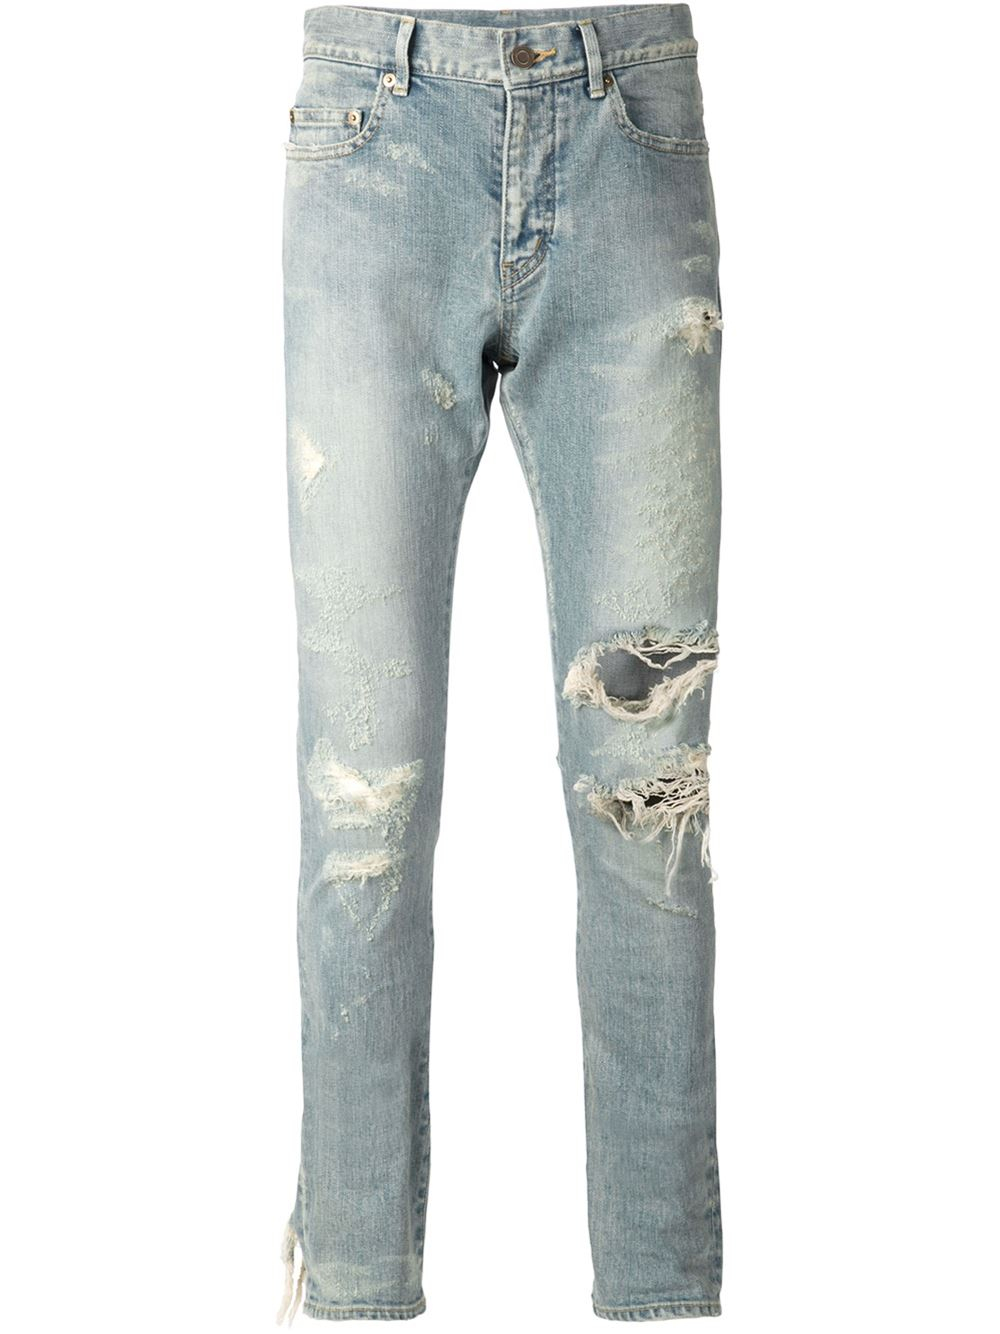 lyst saint laurent distressed skinny jeans in blue for men. Black Bedroom Furniture Sets. Home Design Ideas